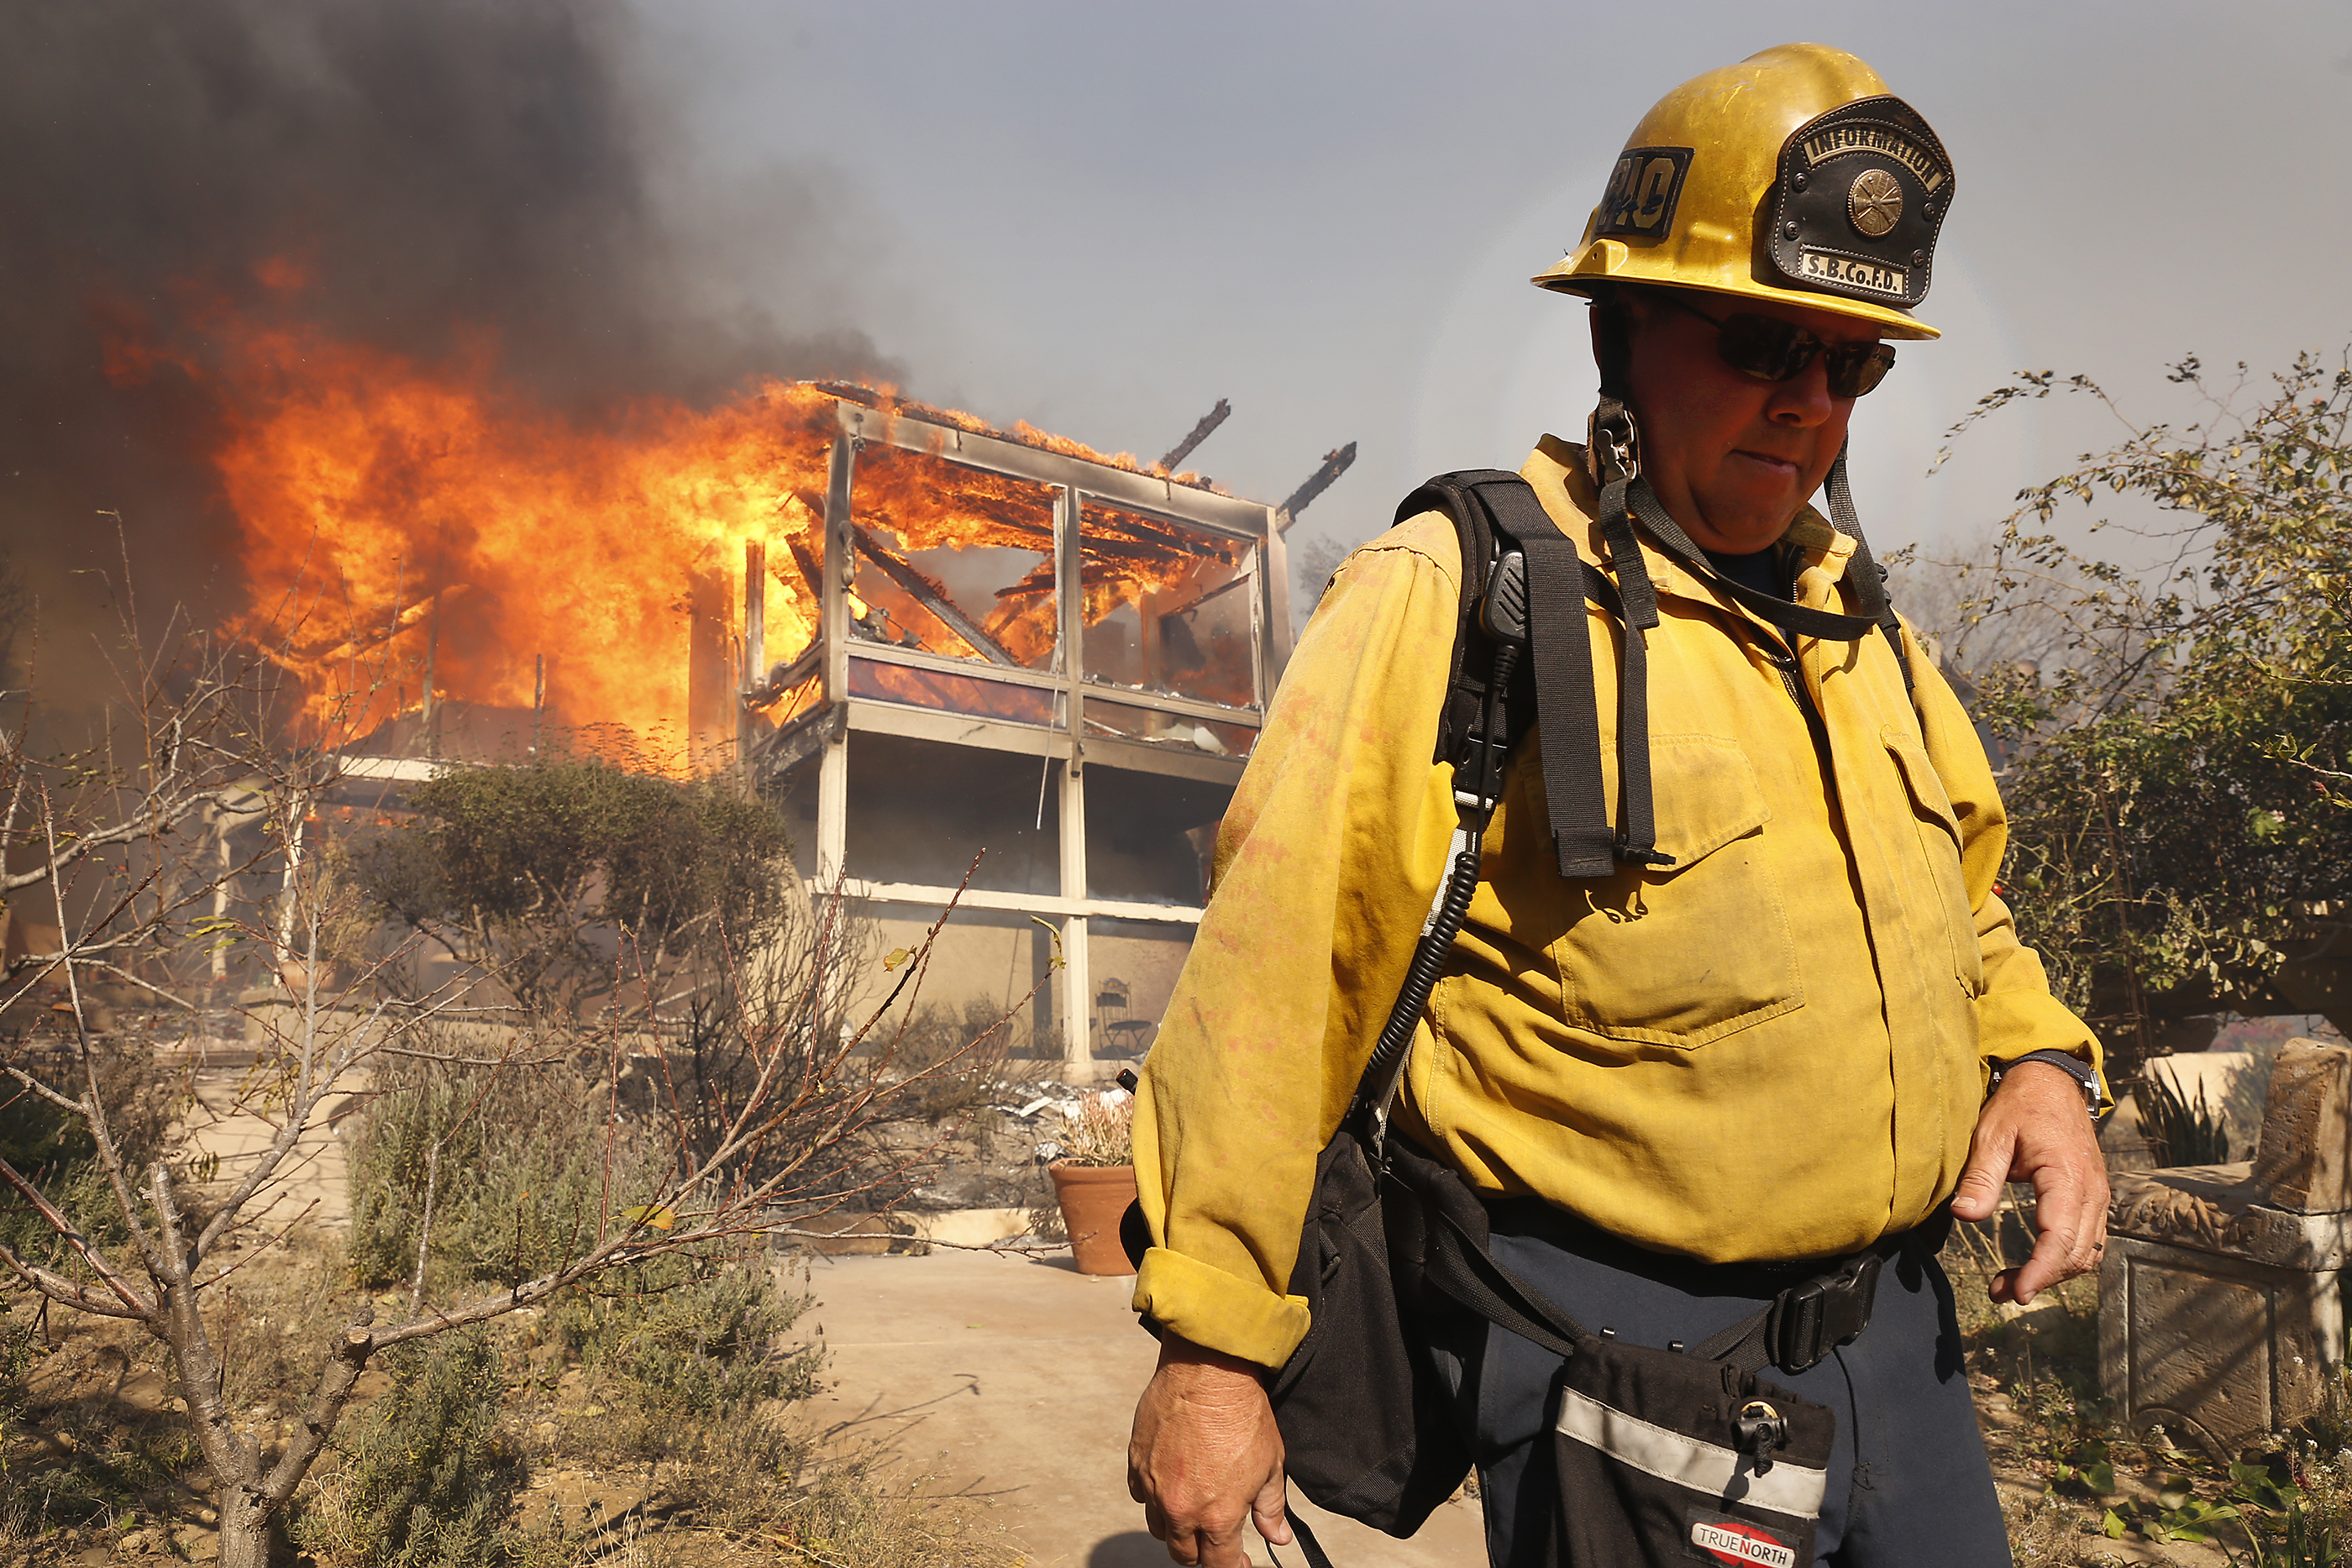 Santa Barbara PIO Mike Eliason watches as a home between Via Baja and Foothill goes up in flames Tuesday midday after the fast-moving, wind-fueled Thomas fire swept through Ventura County.